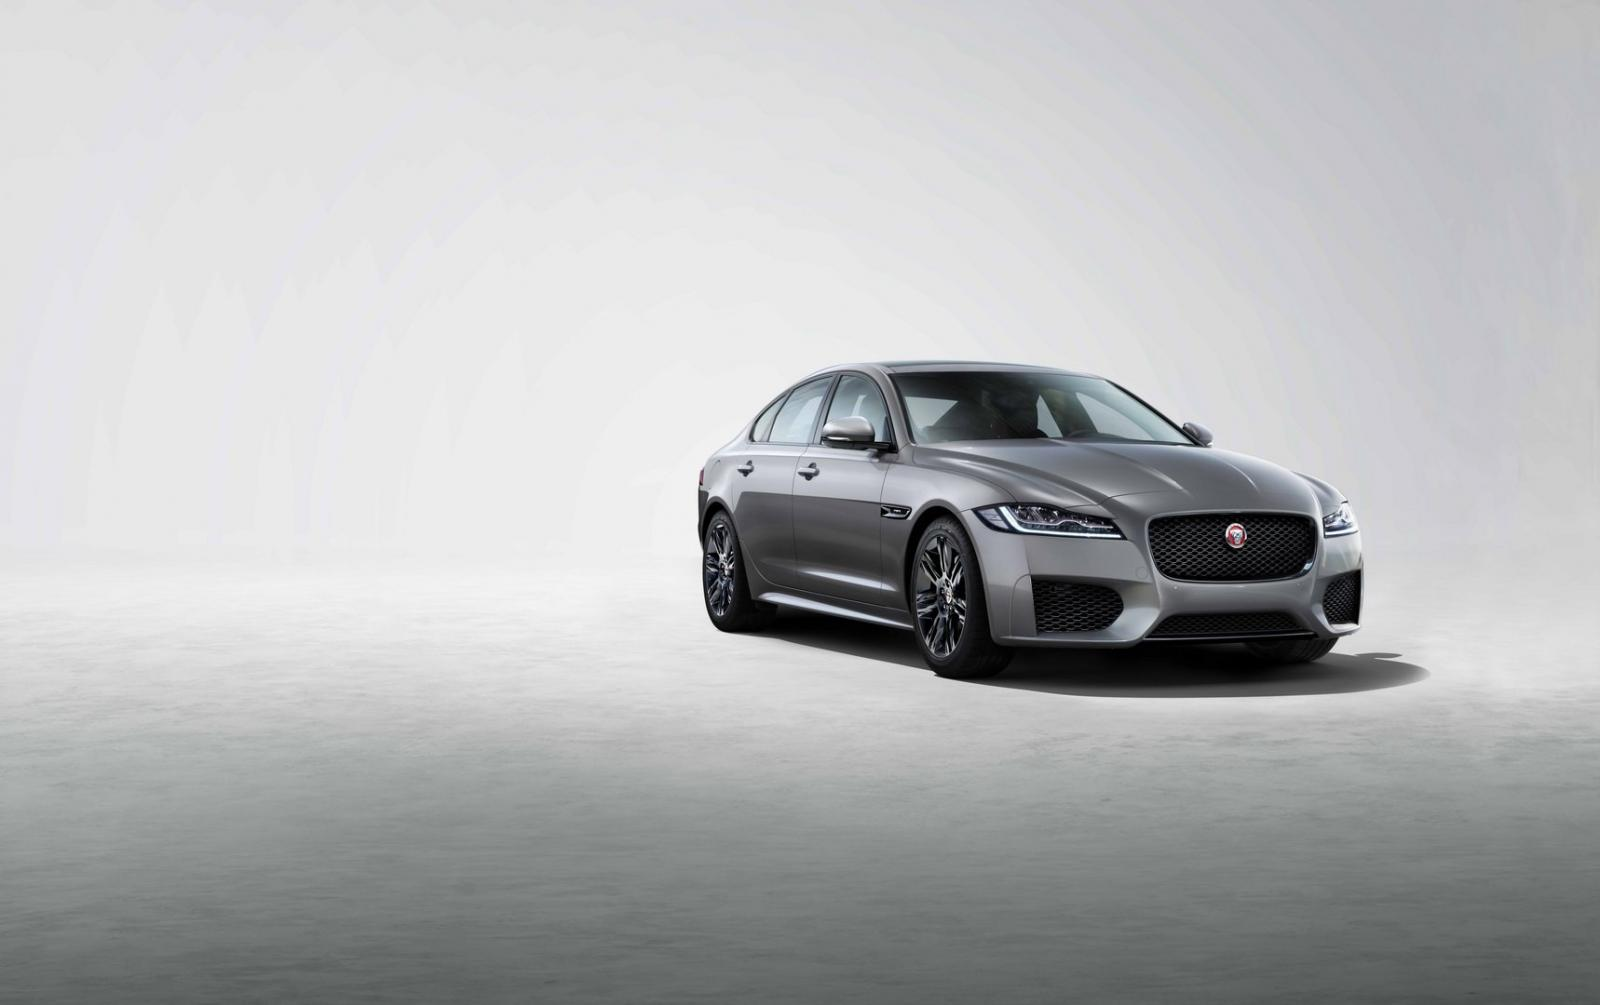 Jaguar XF Chequered Flag 2019